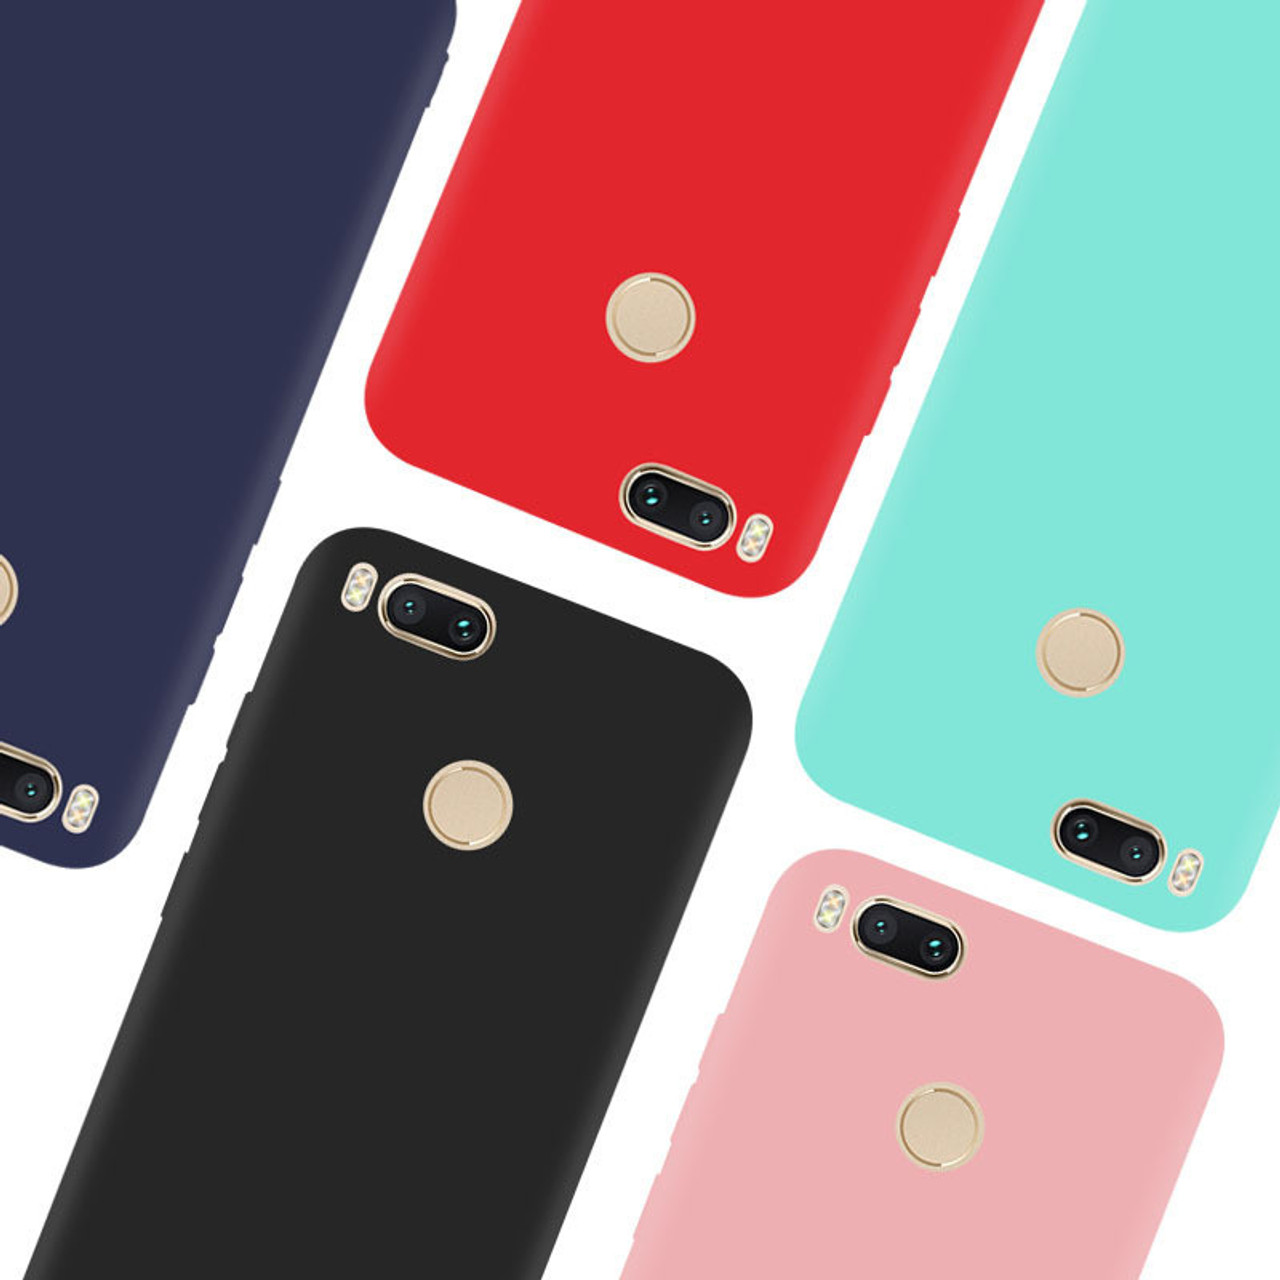 separation shoes 9b9d8 73860 JOEY-BELEZ Matte case For Xiaomi mi a1 case silicone protector cover TPU  case coque for xiaomi mi a1 mia1 mi5x Mobile Phone Bags